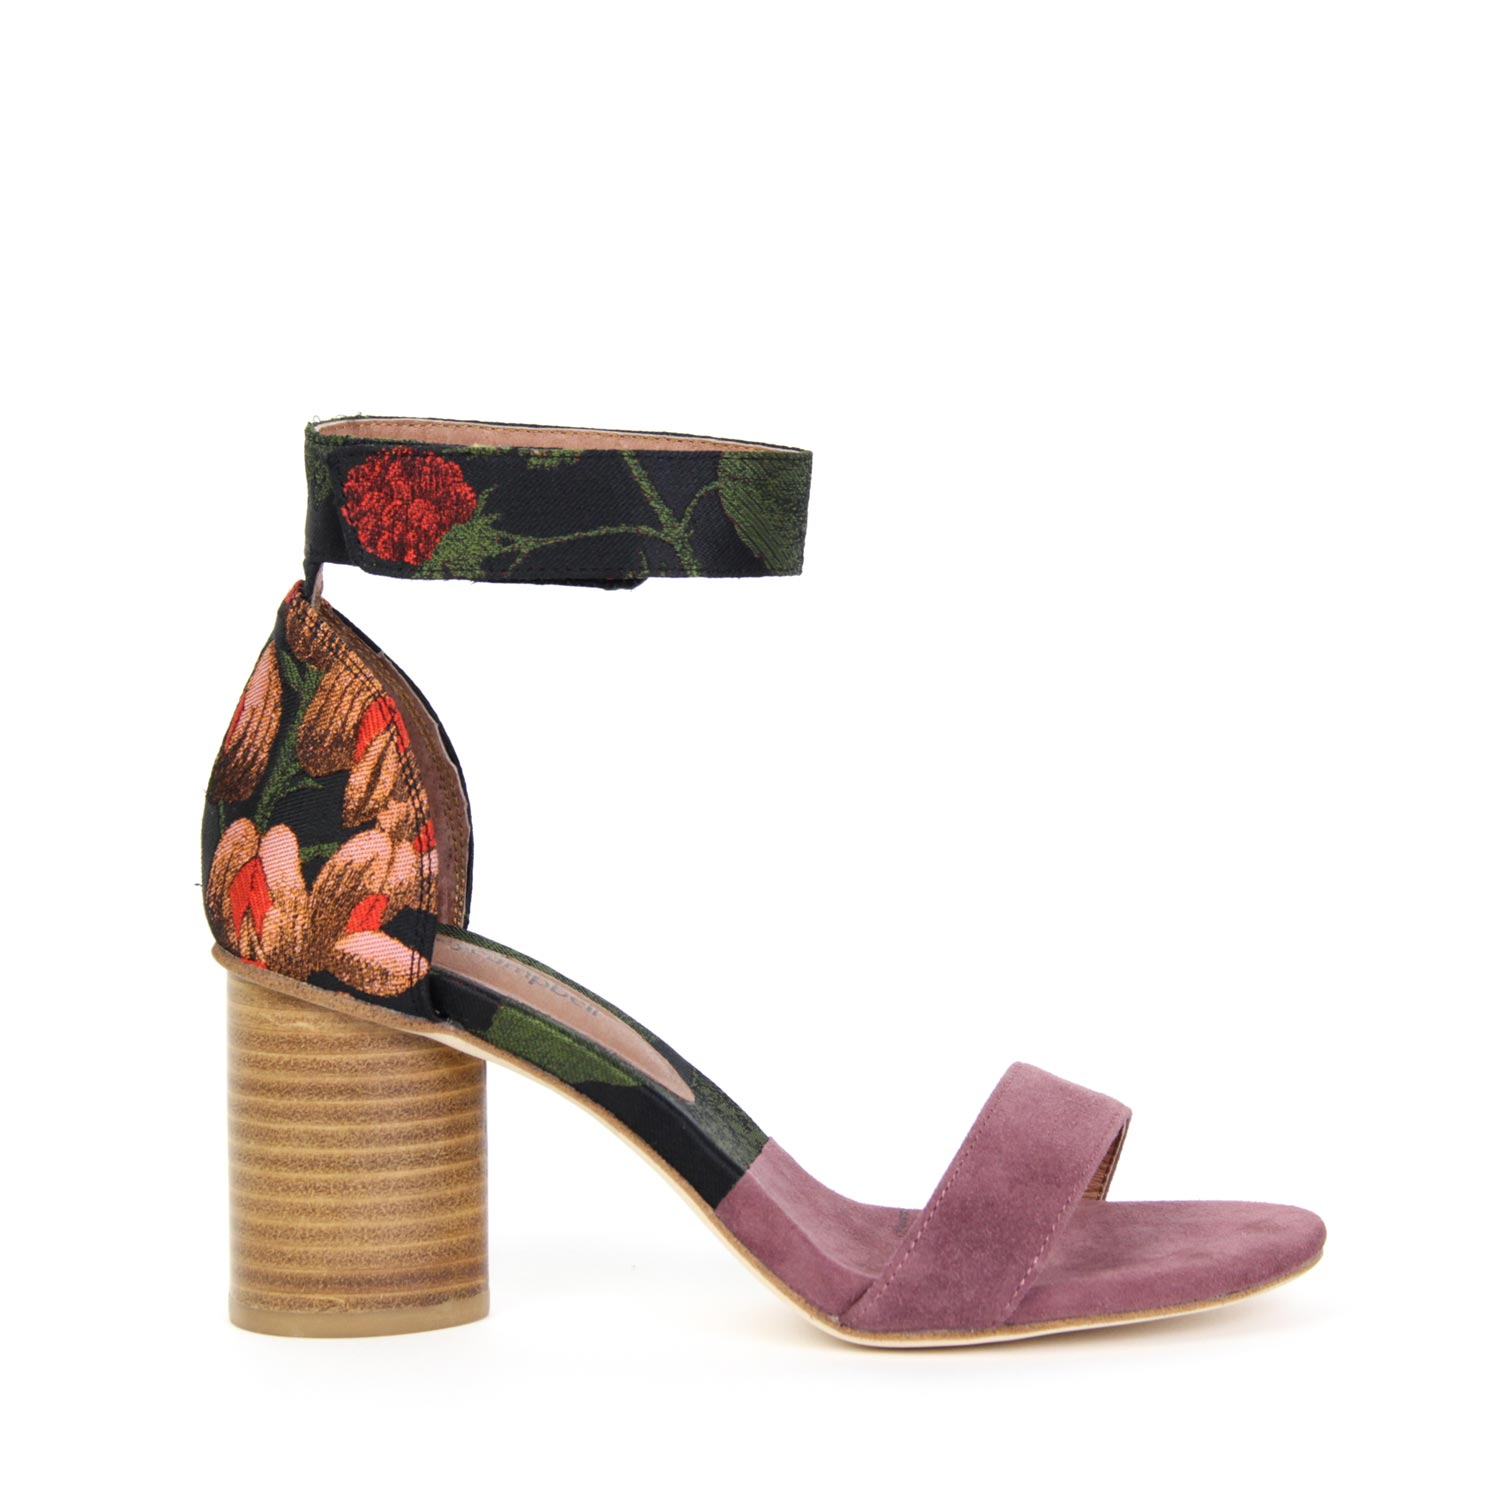 6e660e4f9a0c Details about NEW JEFFREY CAMPBELL PURDY Mid Heel Sandal Purple Rose